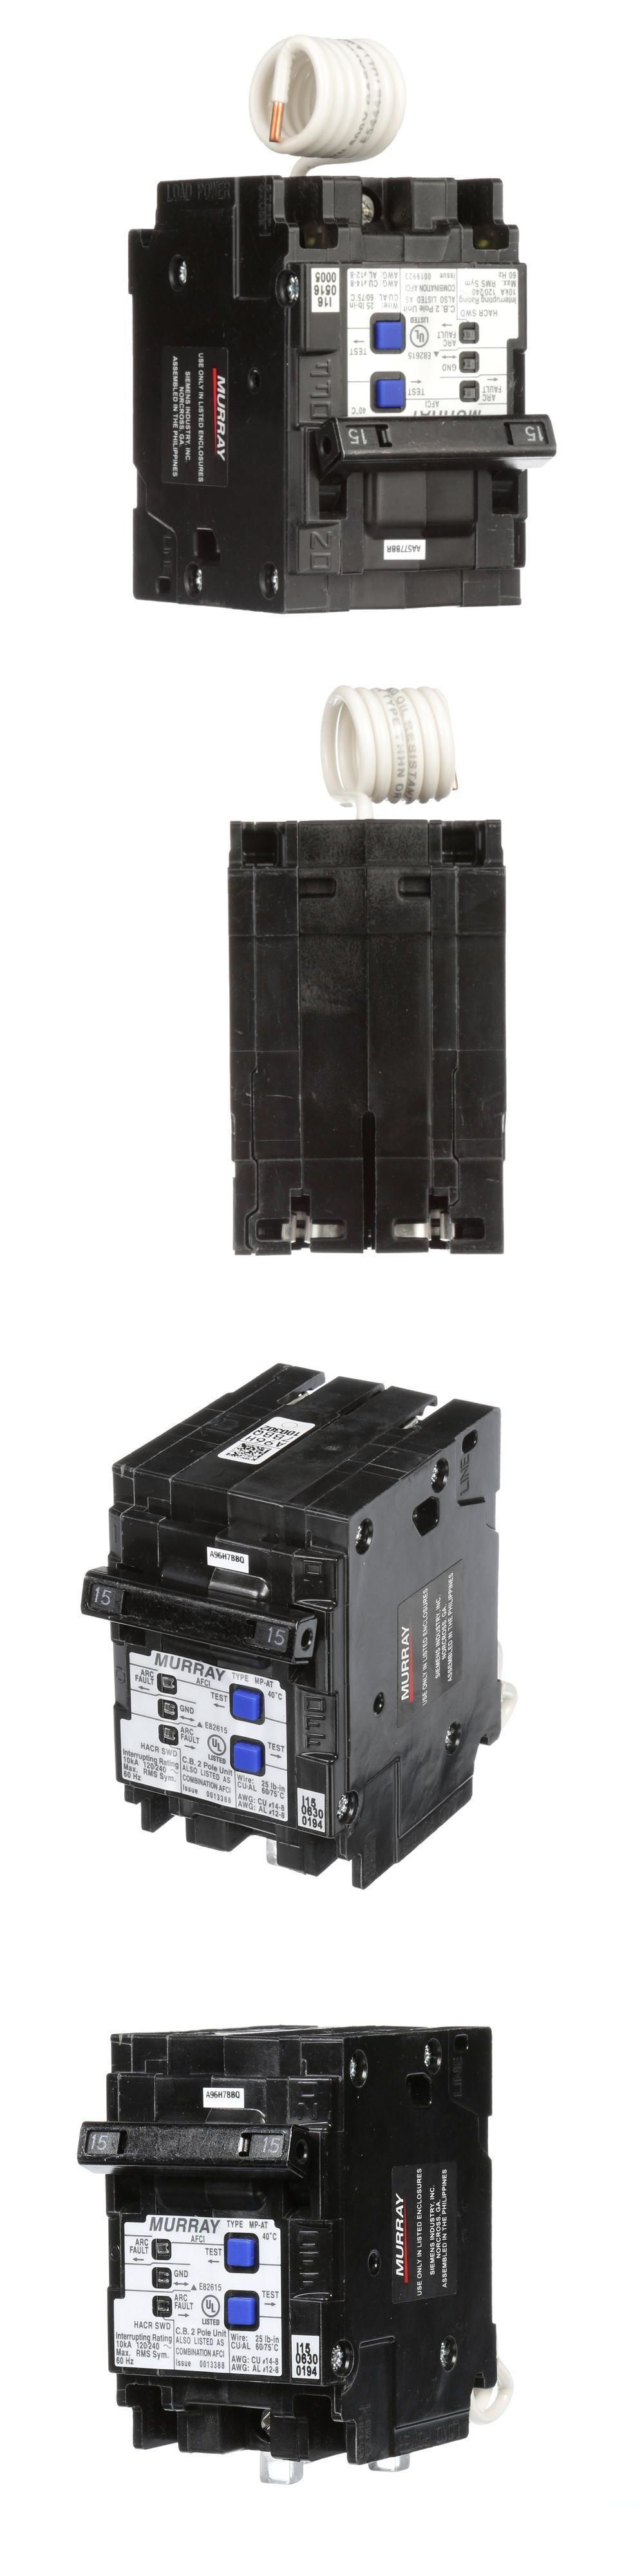 Murray 15 Amp Double Pole Type Mp At Combination Afci Circuit Breaker Box Including Ge Breakers And Fuse Boxes 20596